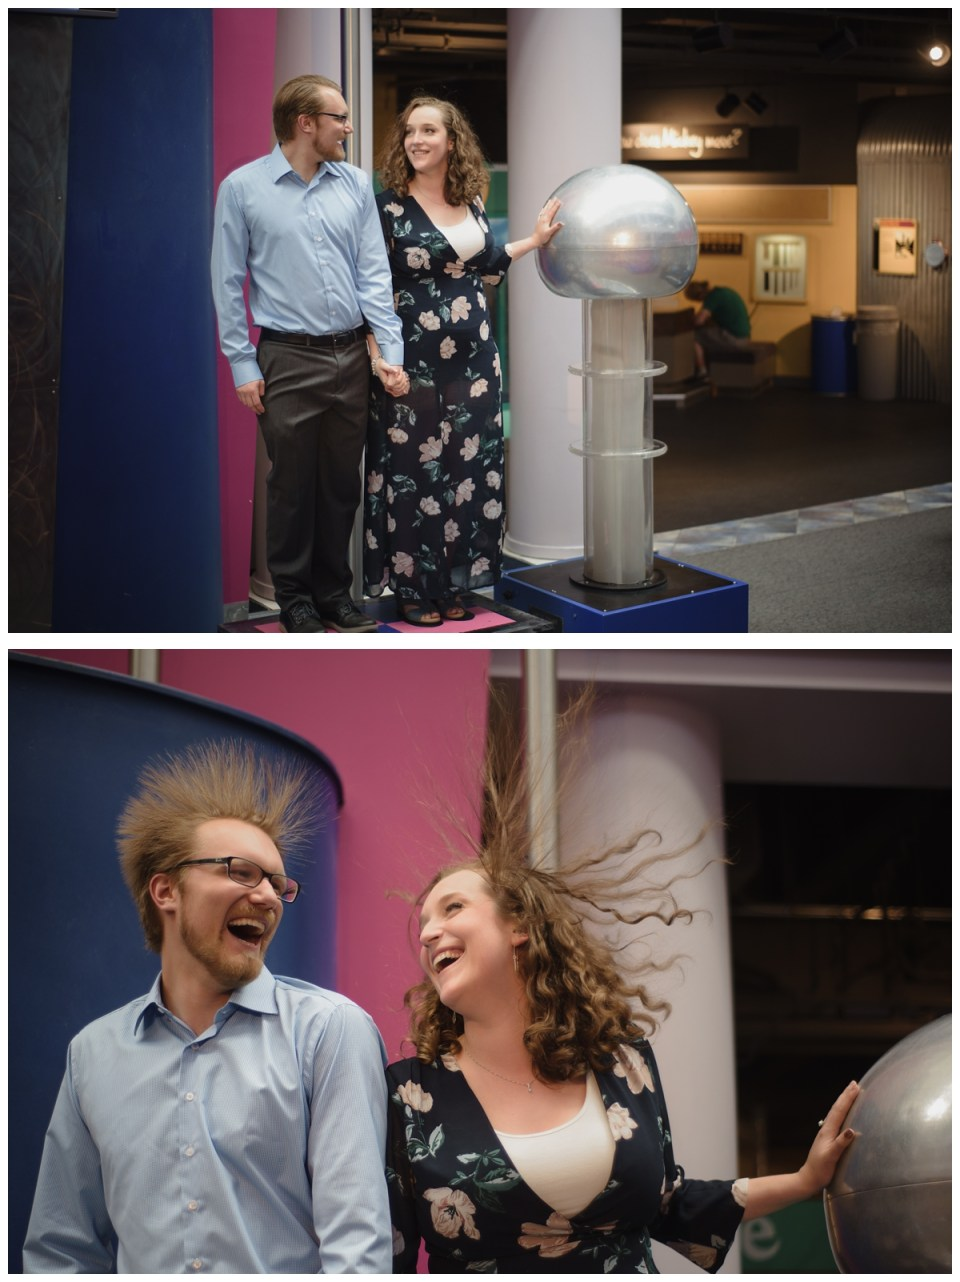 static electricty ball science centre engagement session regina